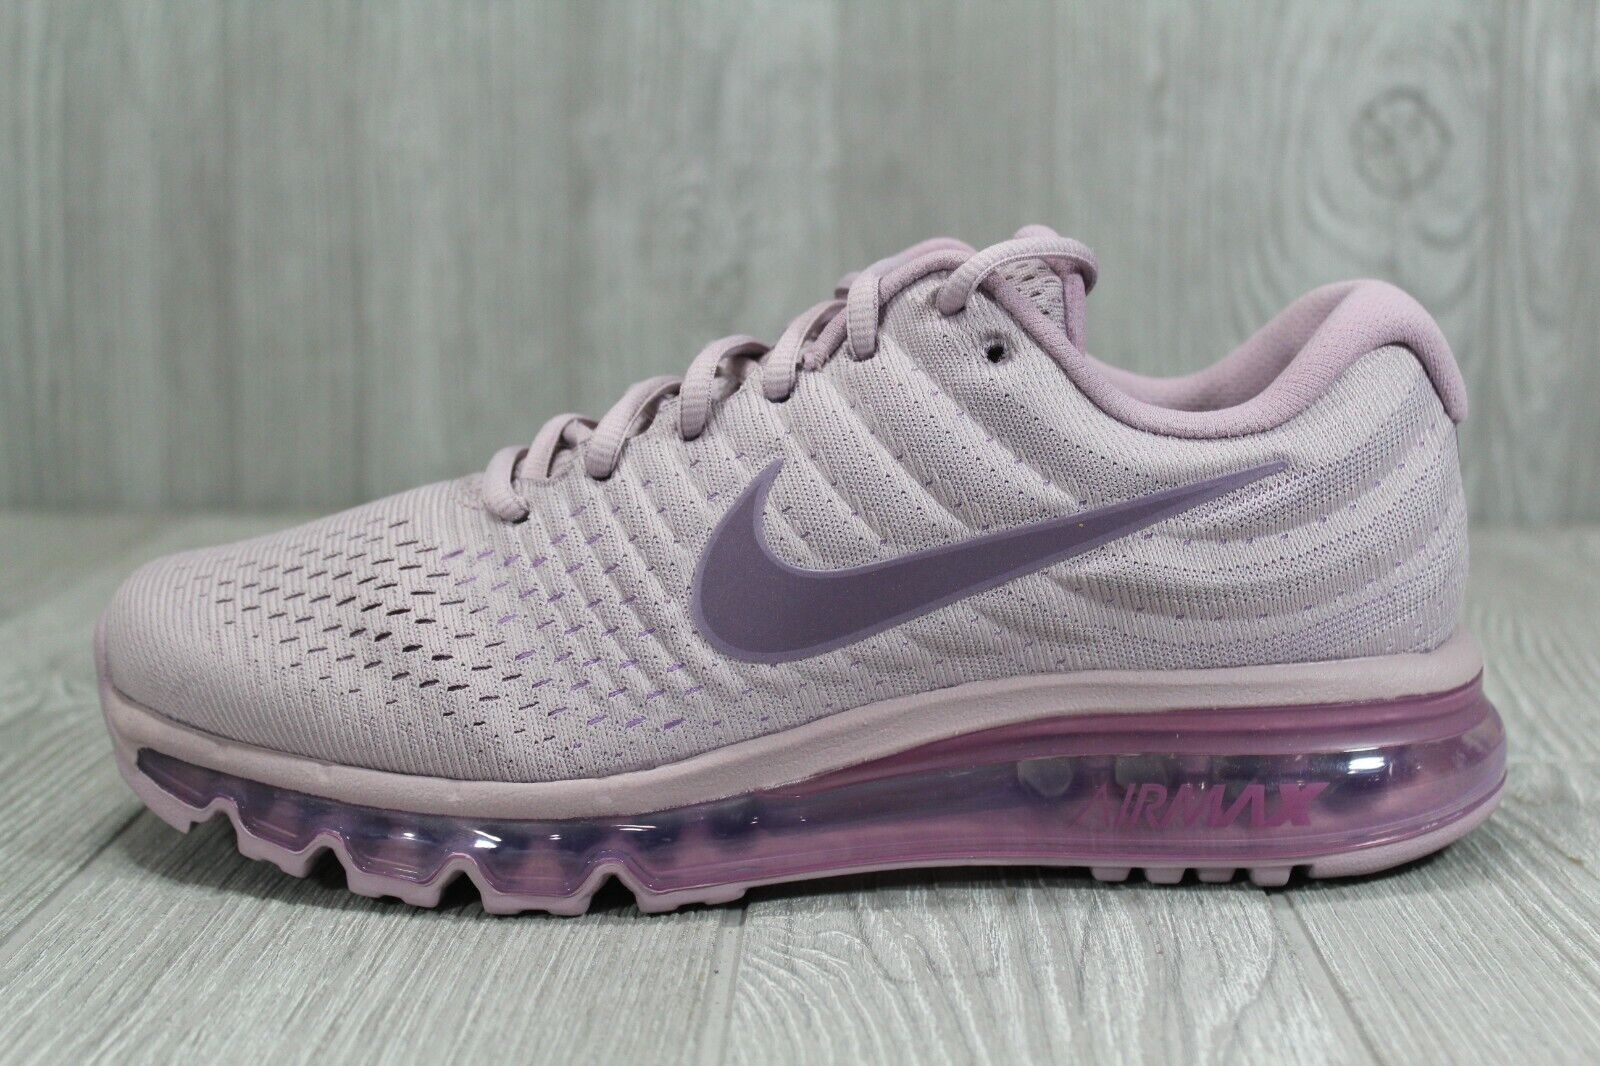 43 Nike Air Max 2017 Plum Fog Women's Running Shoes Size 7.5-9 849560 503